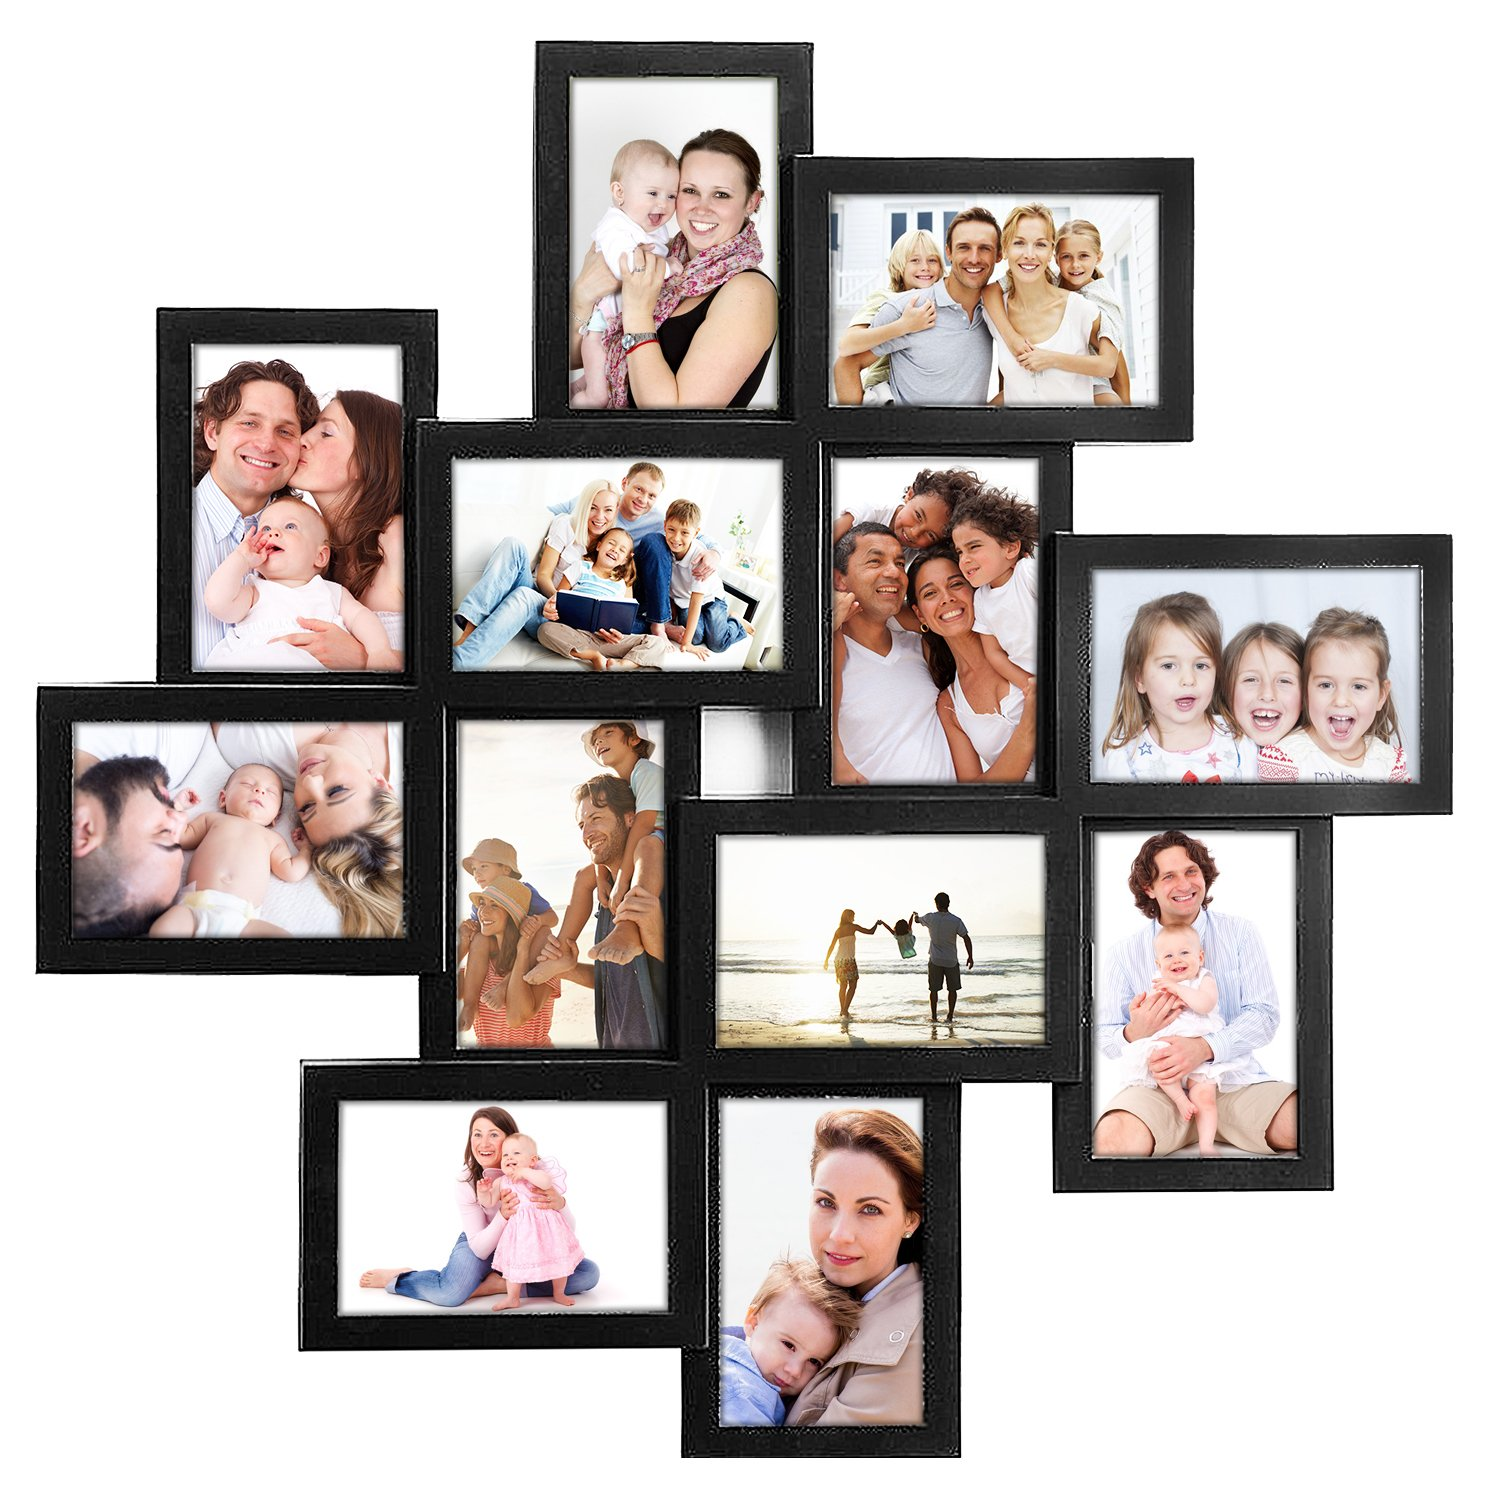 Jerry & Maggie - Photo Frame 24x24 Square Storm Eye Black PVC Picture Frame Selfie Gallery Collage Wall Hanging for 6x4 Photo - 12 Photo Sockets - Wall Mounting Design by Jerry & Maggie